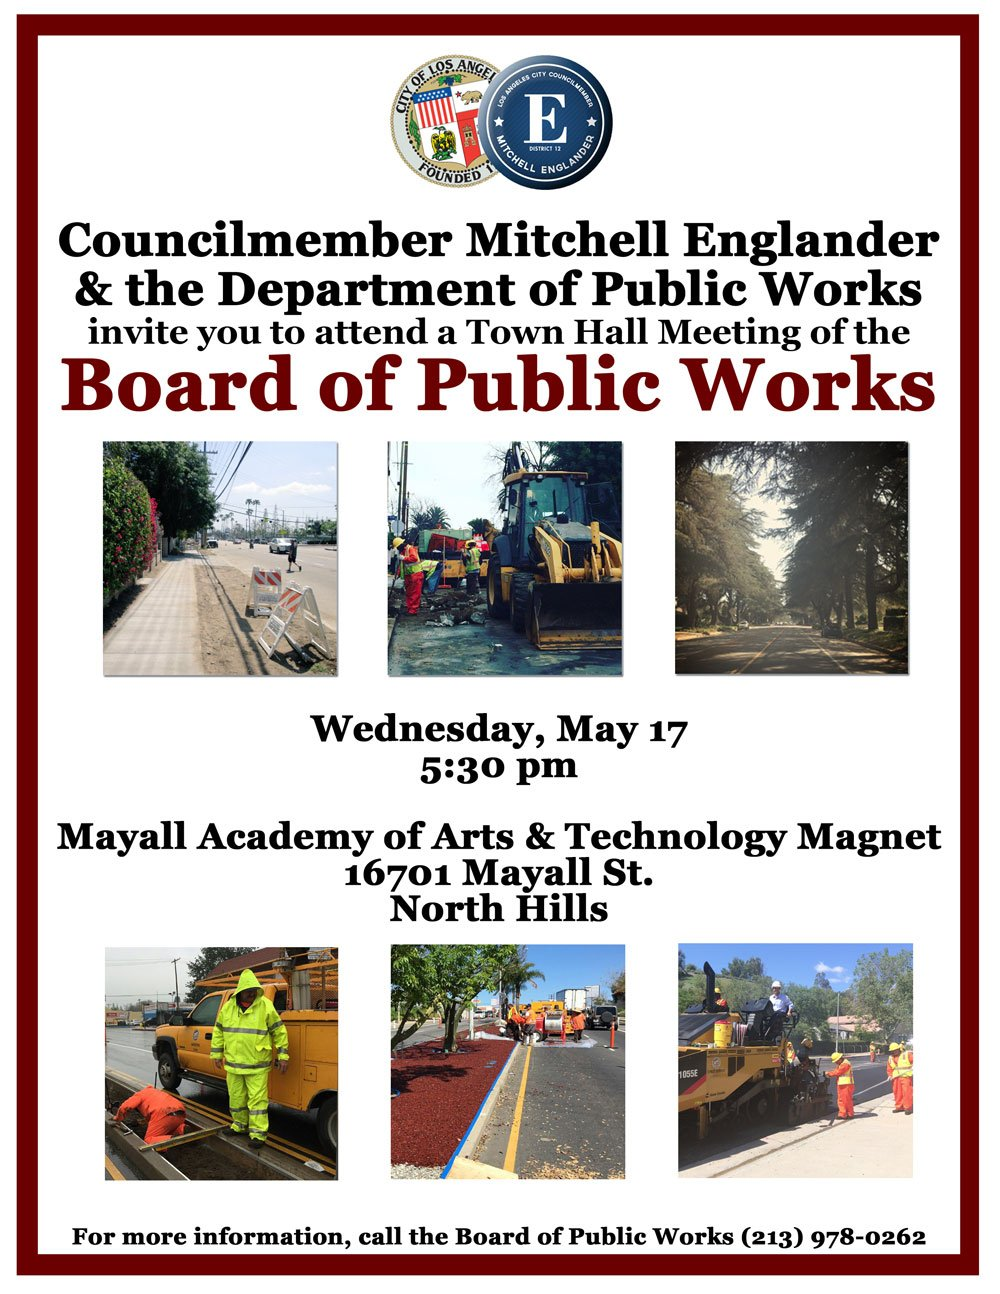 CD 12 Board of Public Works Town Hall